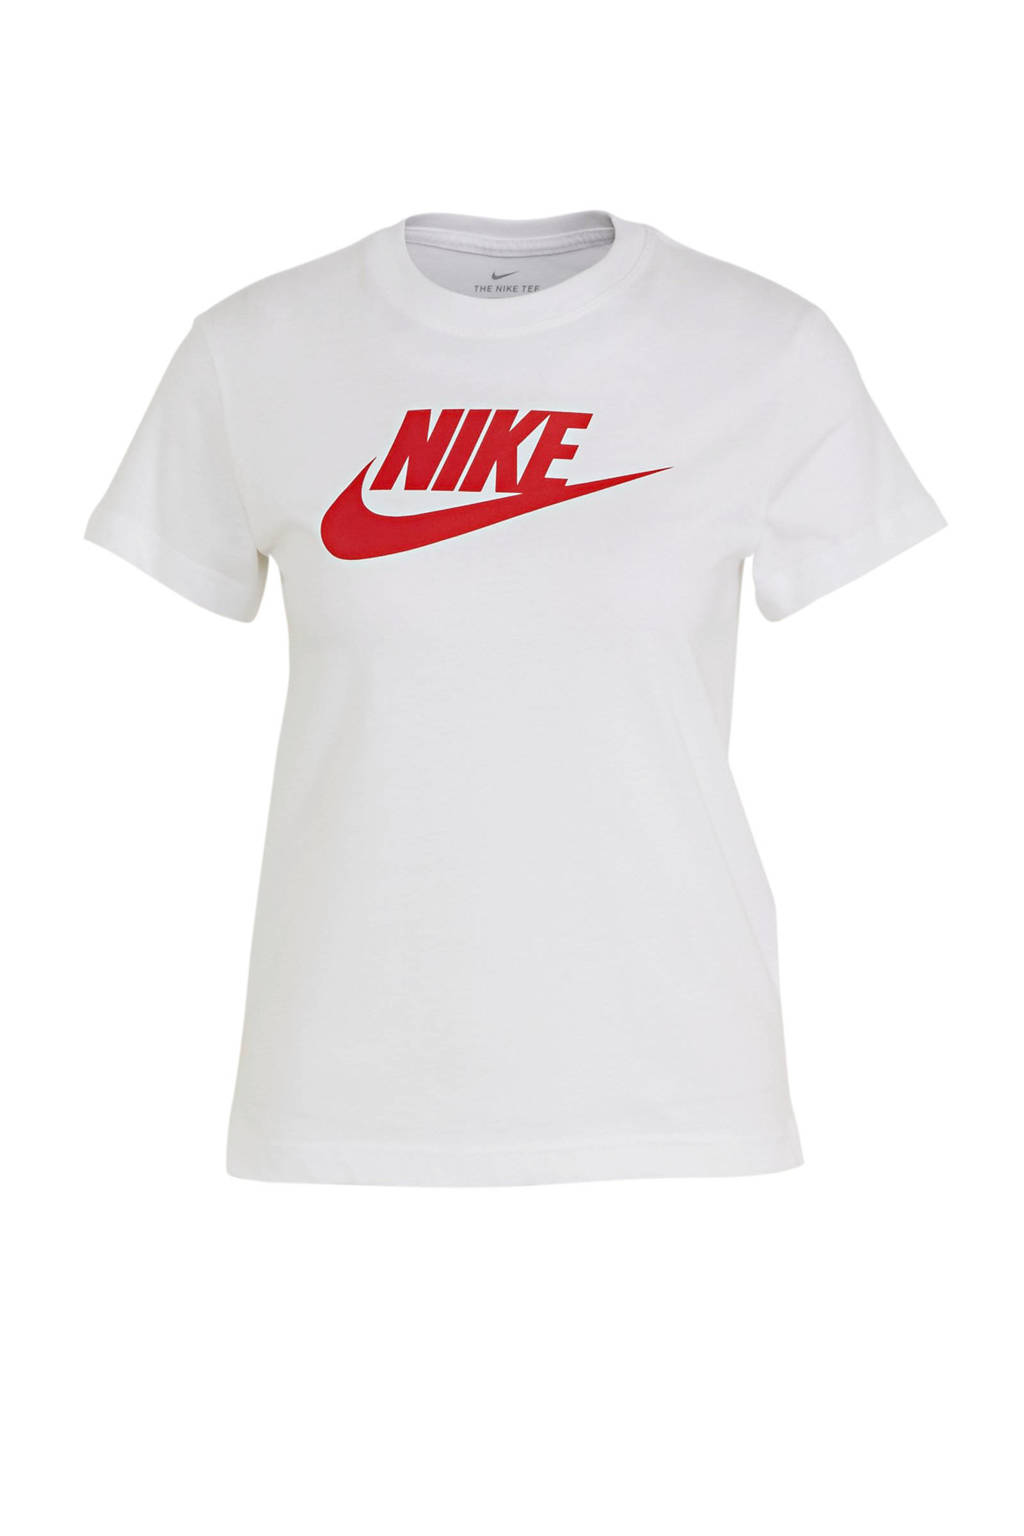 Nike T-shirt wit/rood, Wit/rood